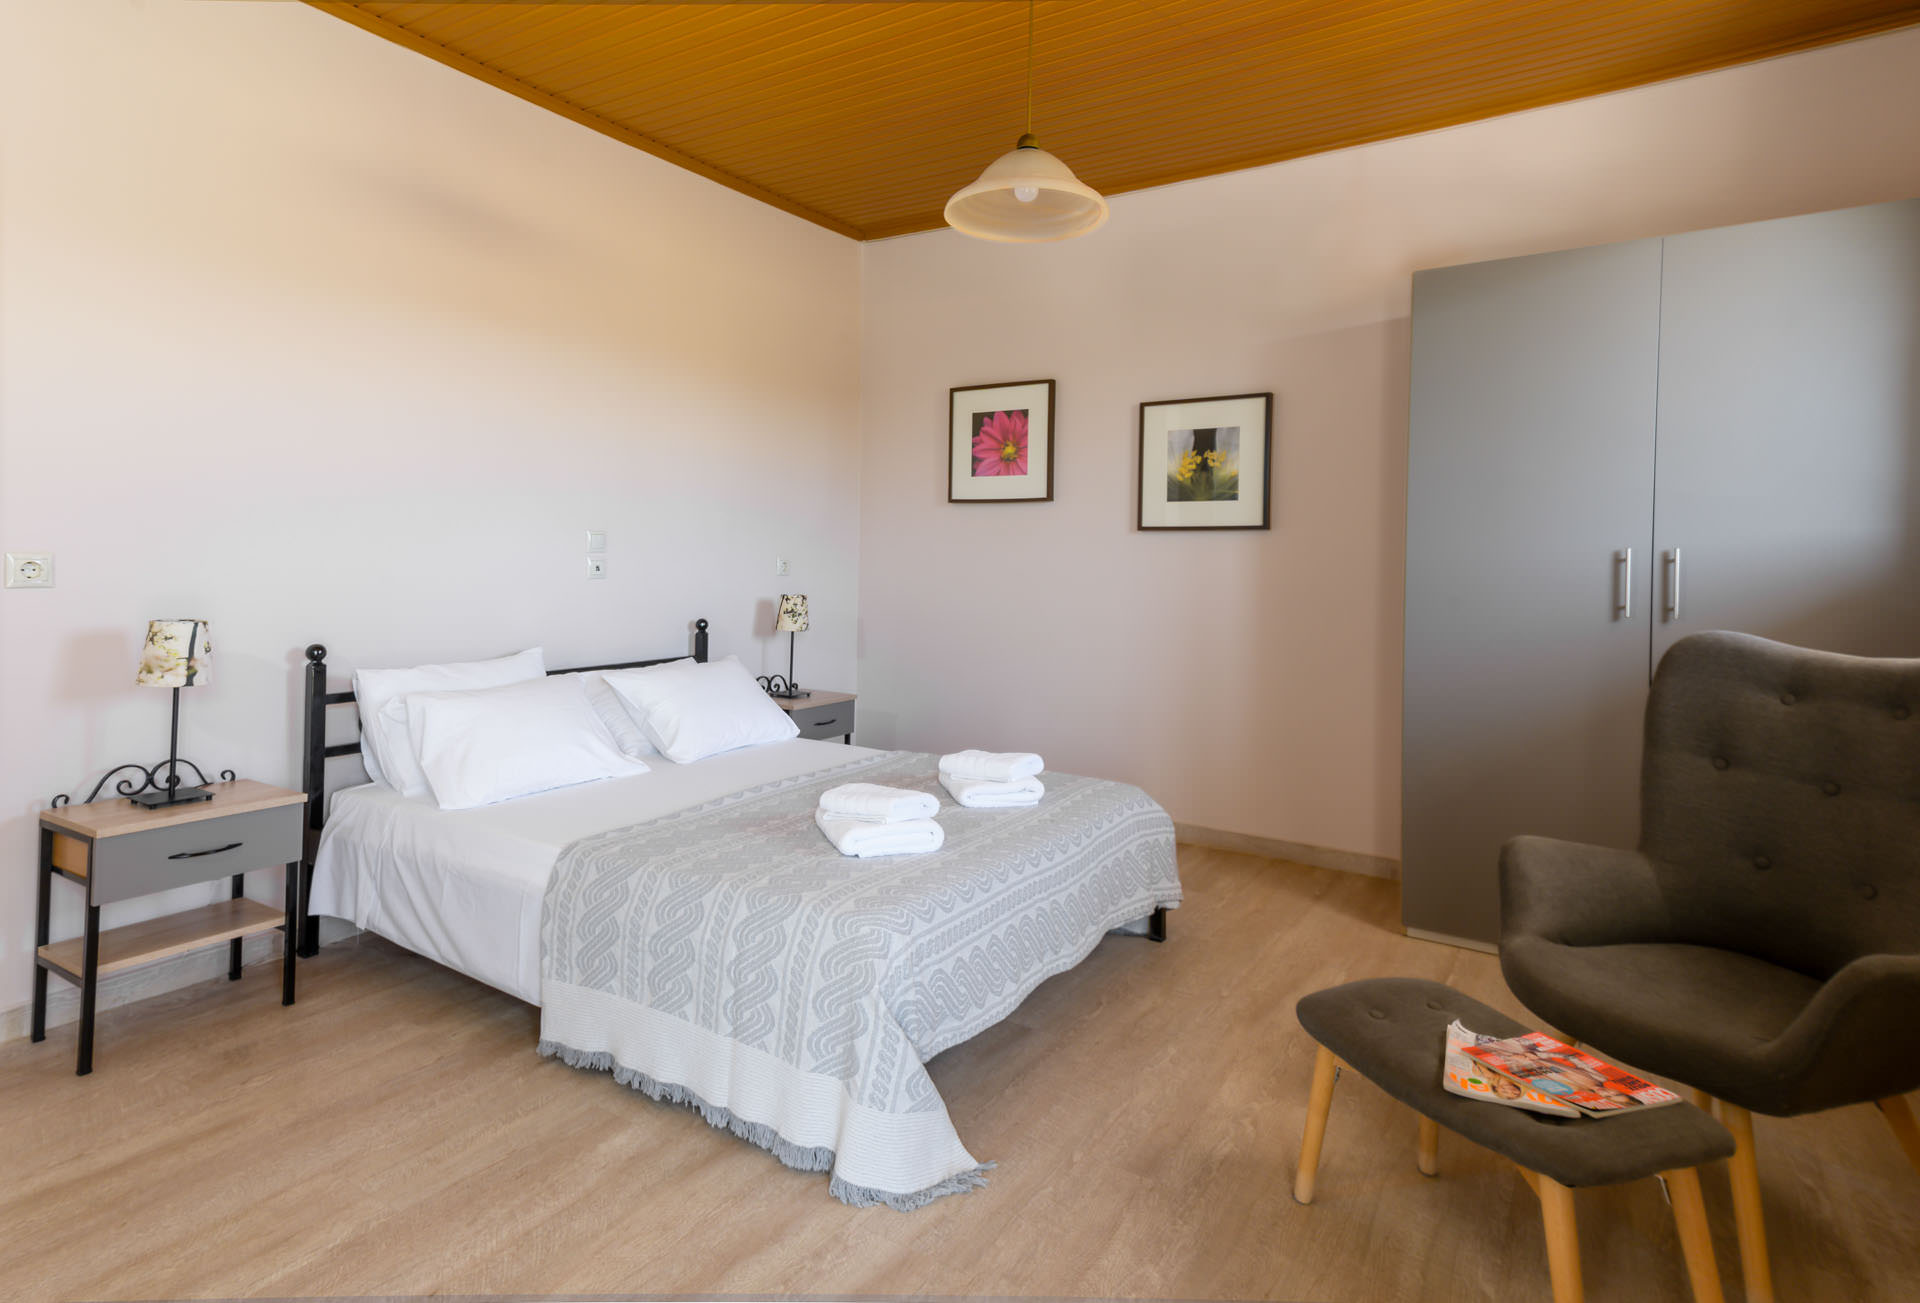 September weekly holiday package 455€  (includes accommodation + car)